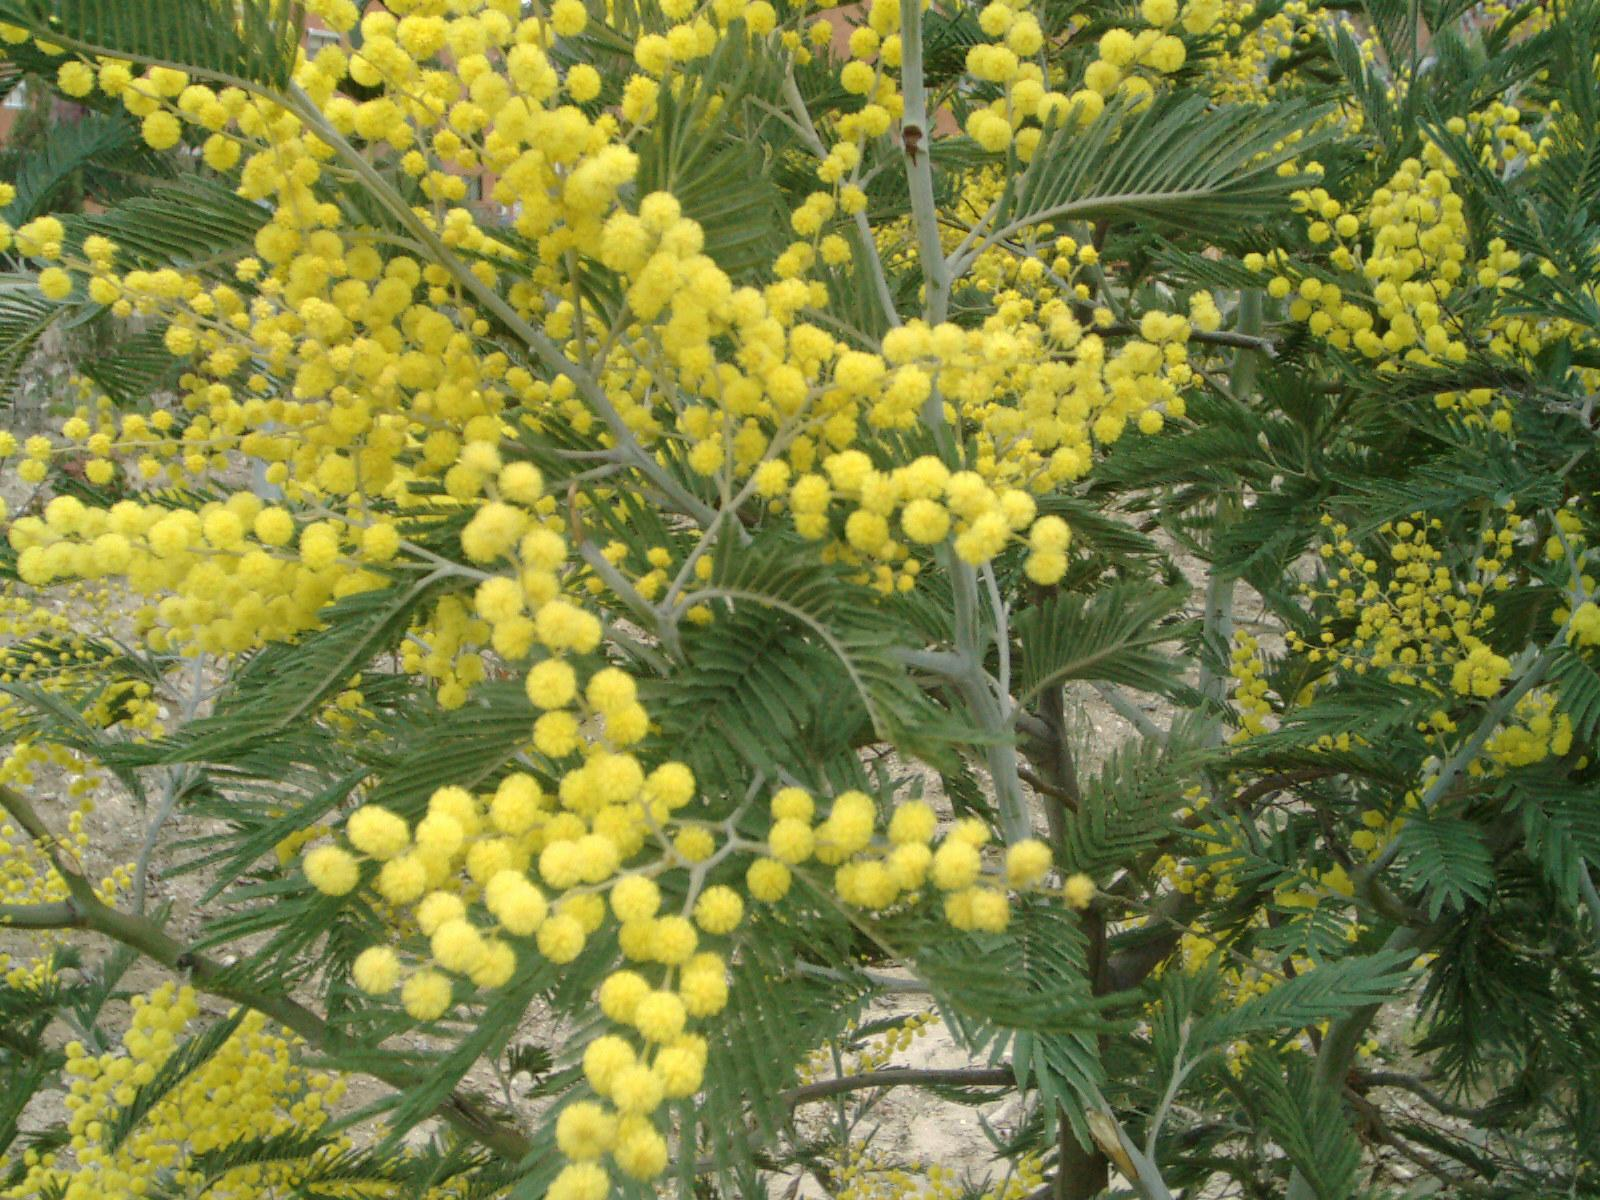 Acacia Dealbata Garden Shrub For Sale Uk Letsgoplantingcouk